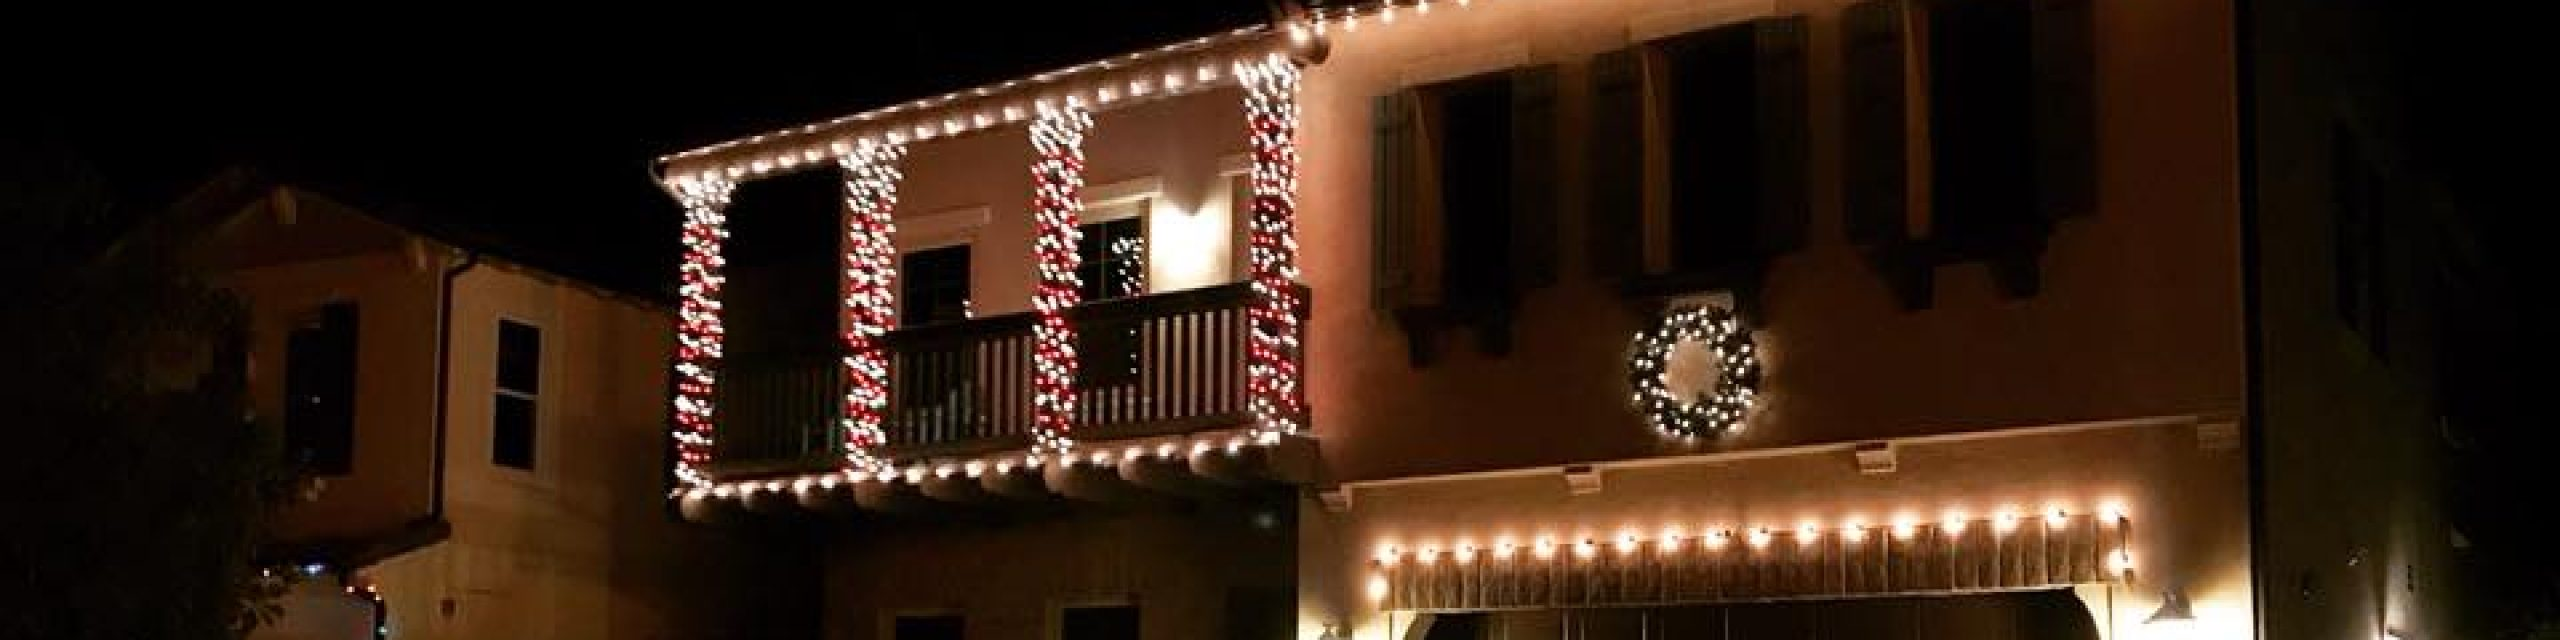 del-sur-custom-cut-christmas-lights